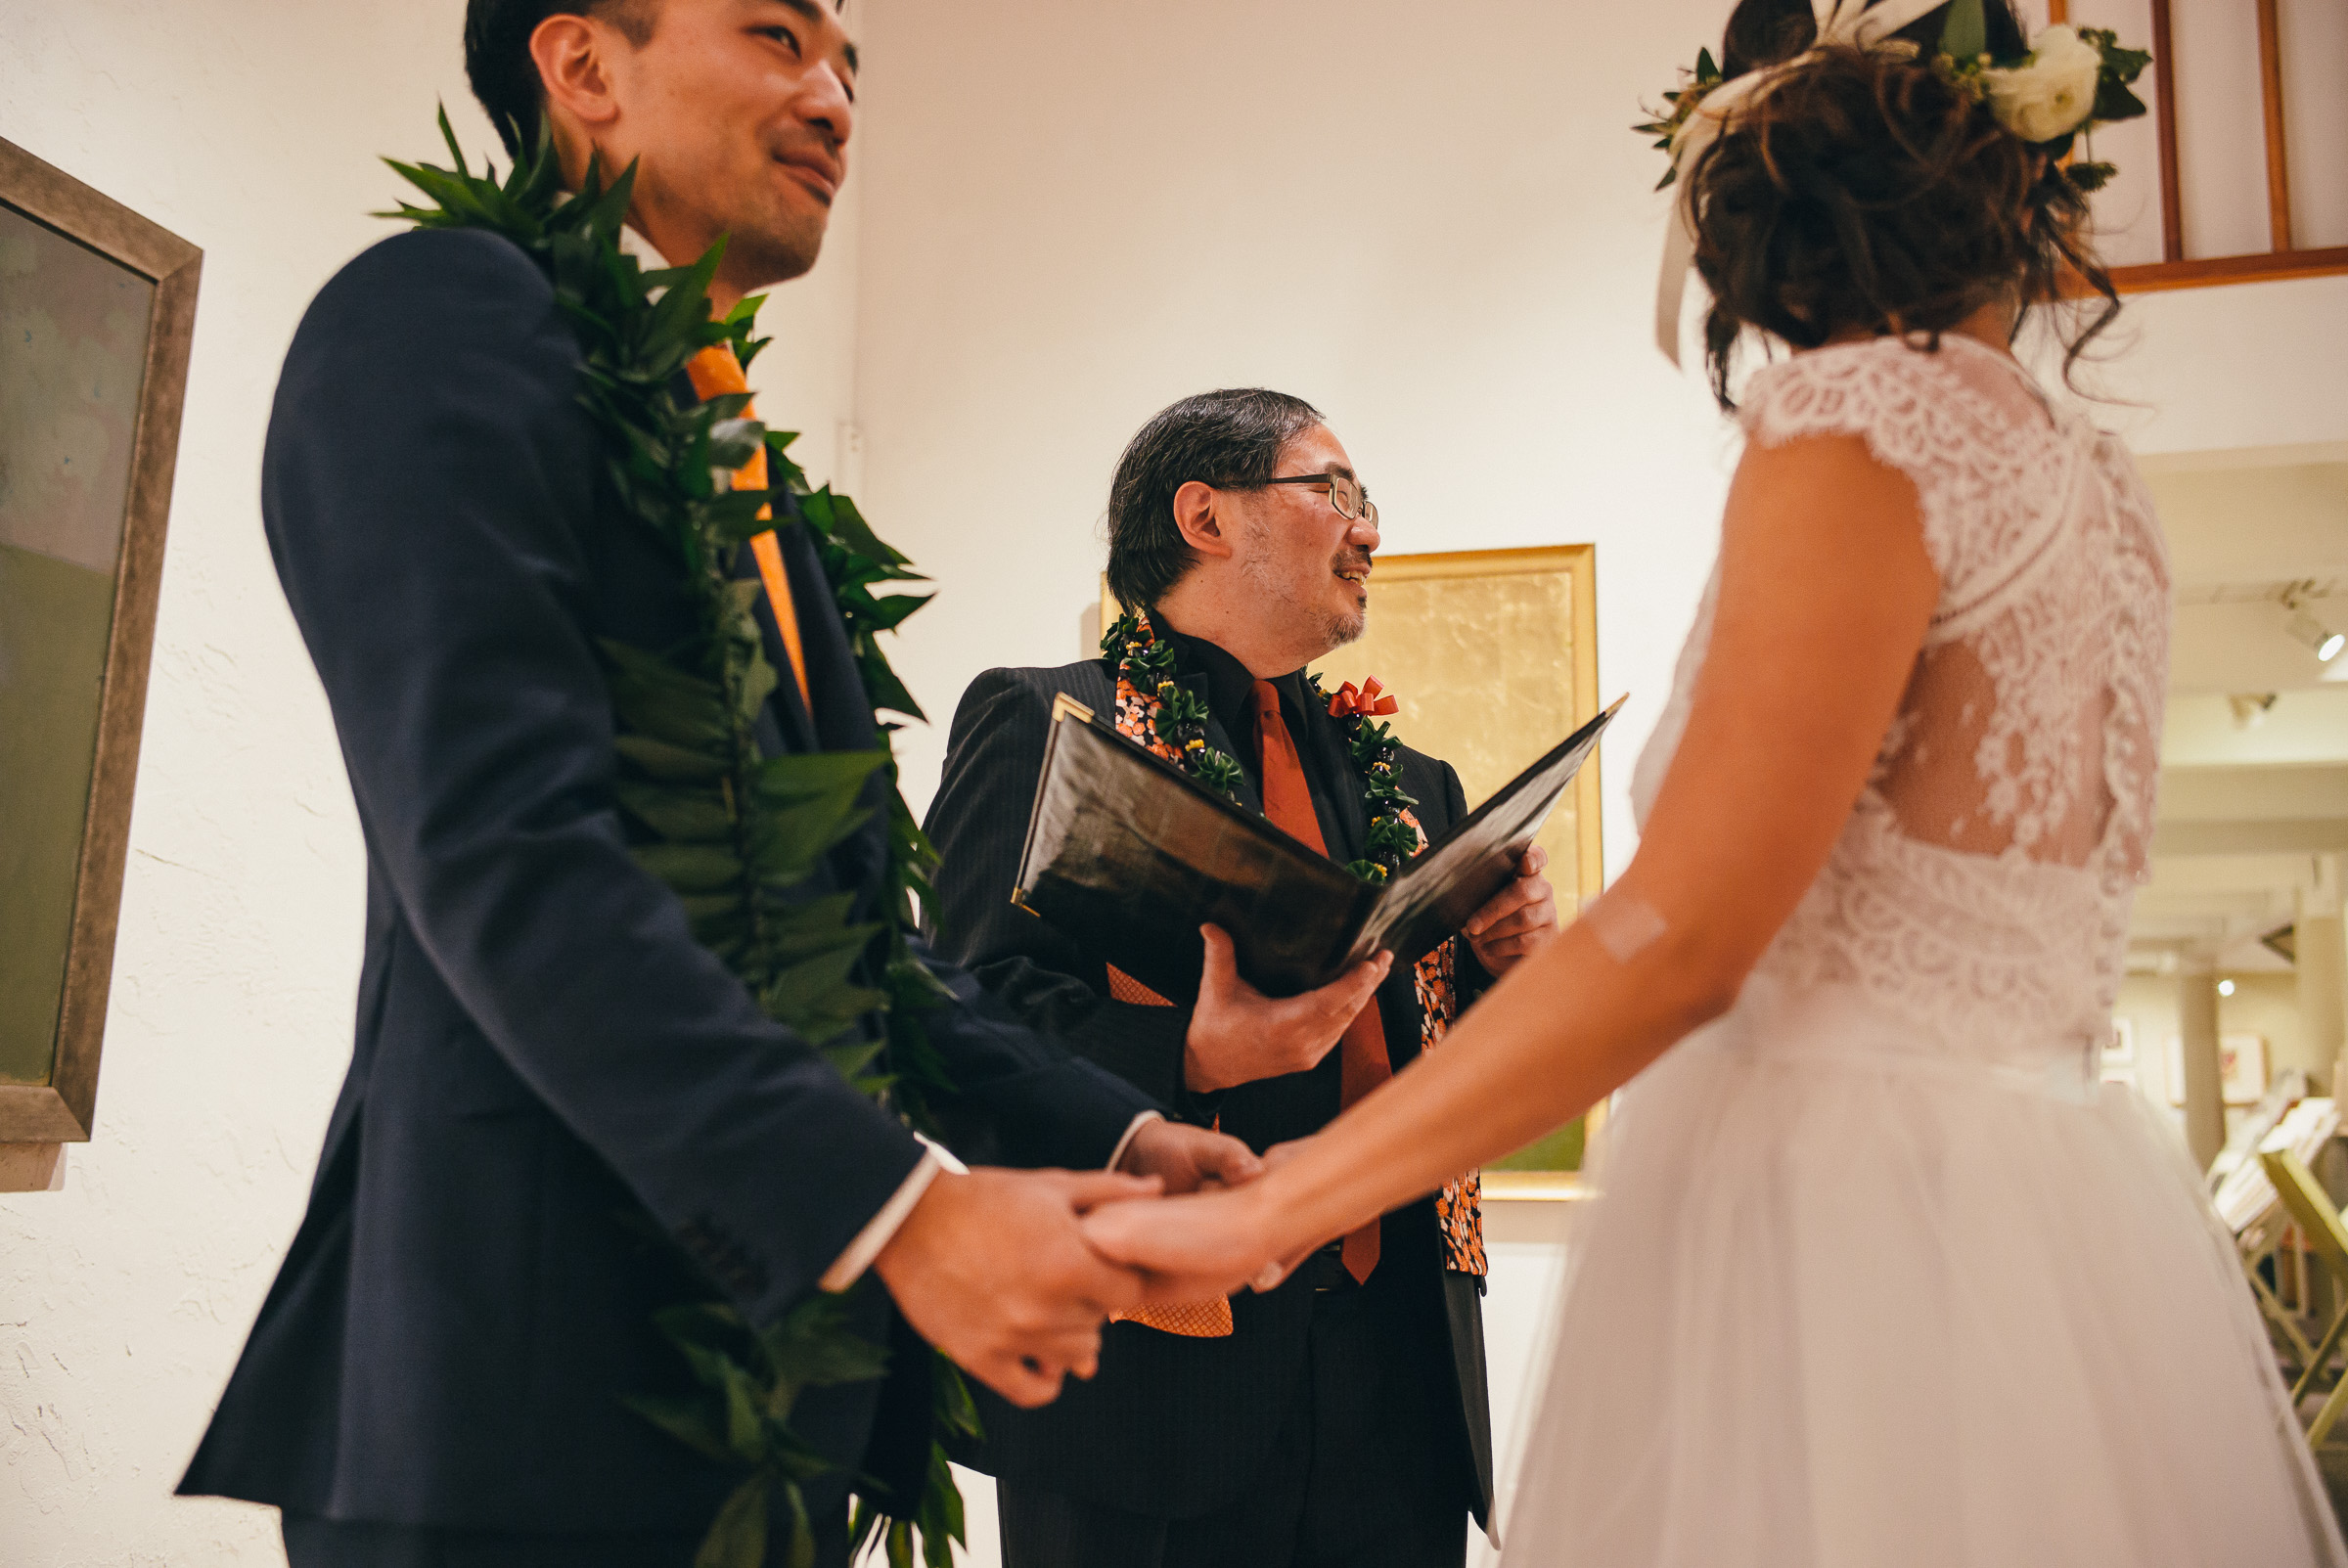 Low-Key Wedding Ceremony in Pioneer Square in Seattle, WA